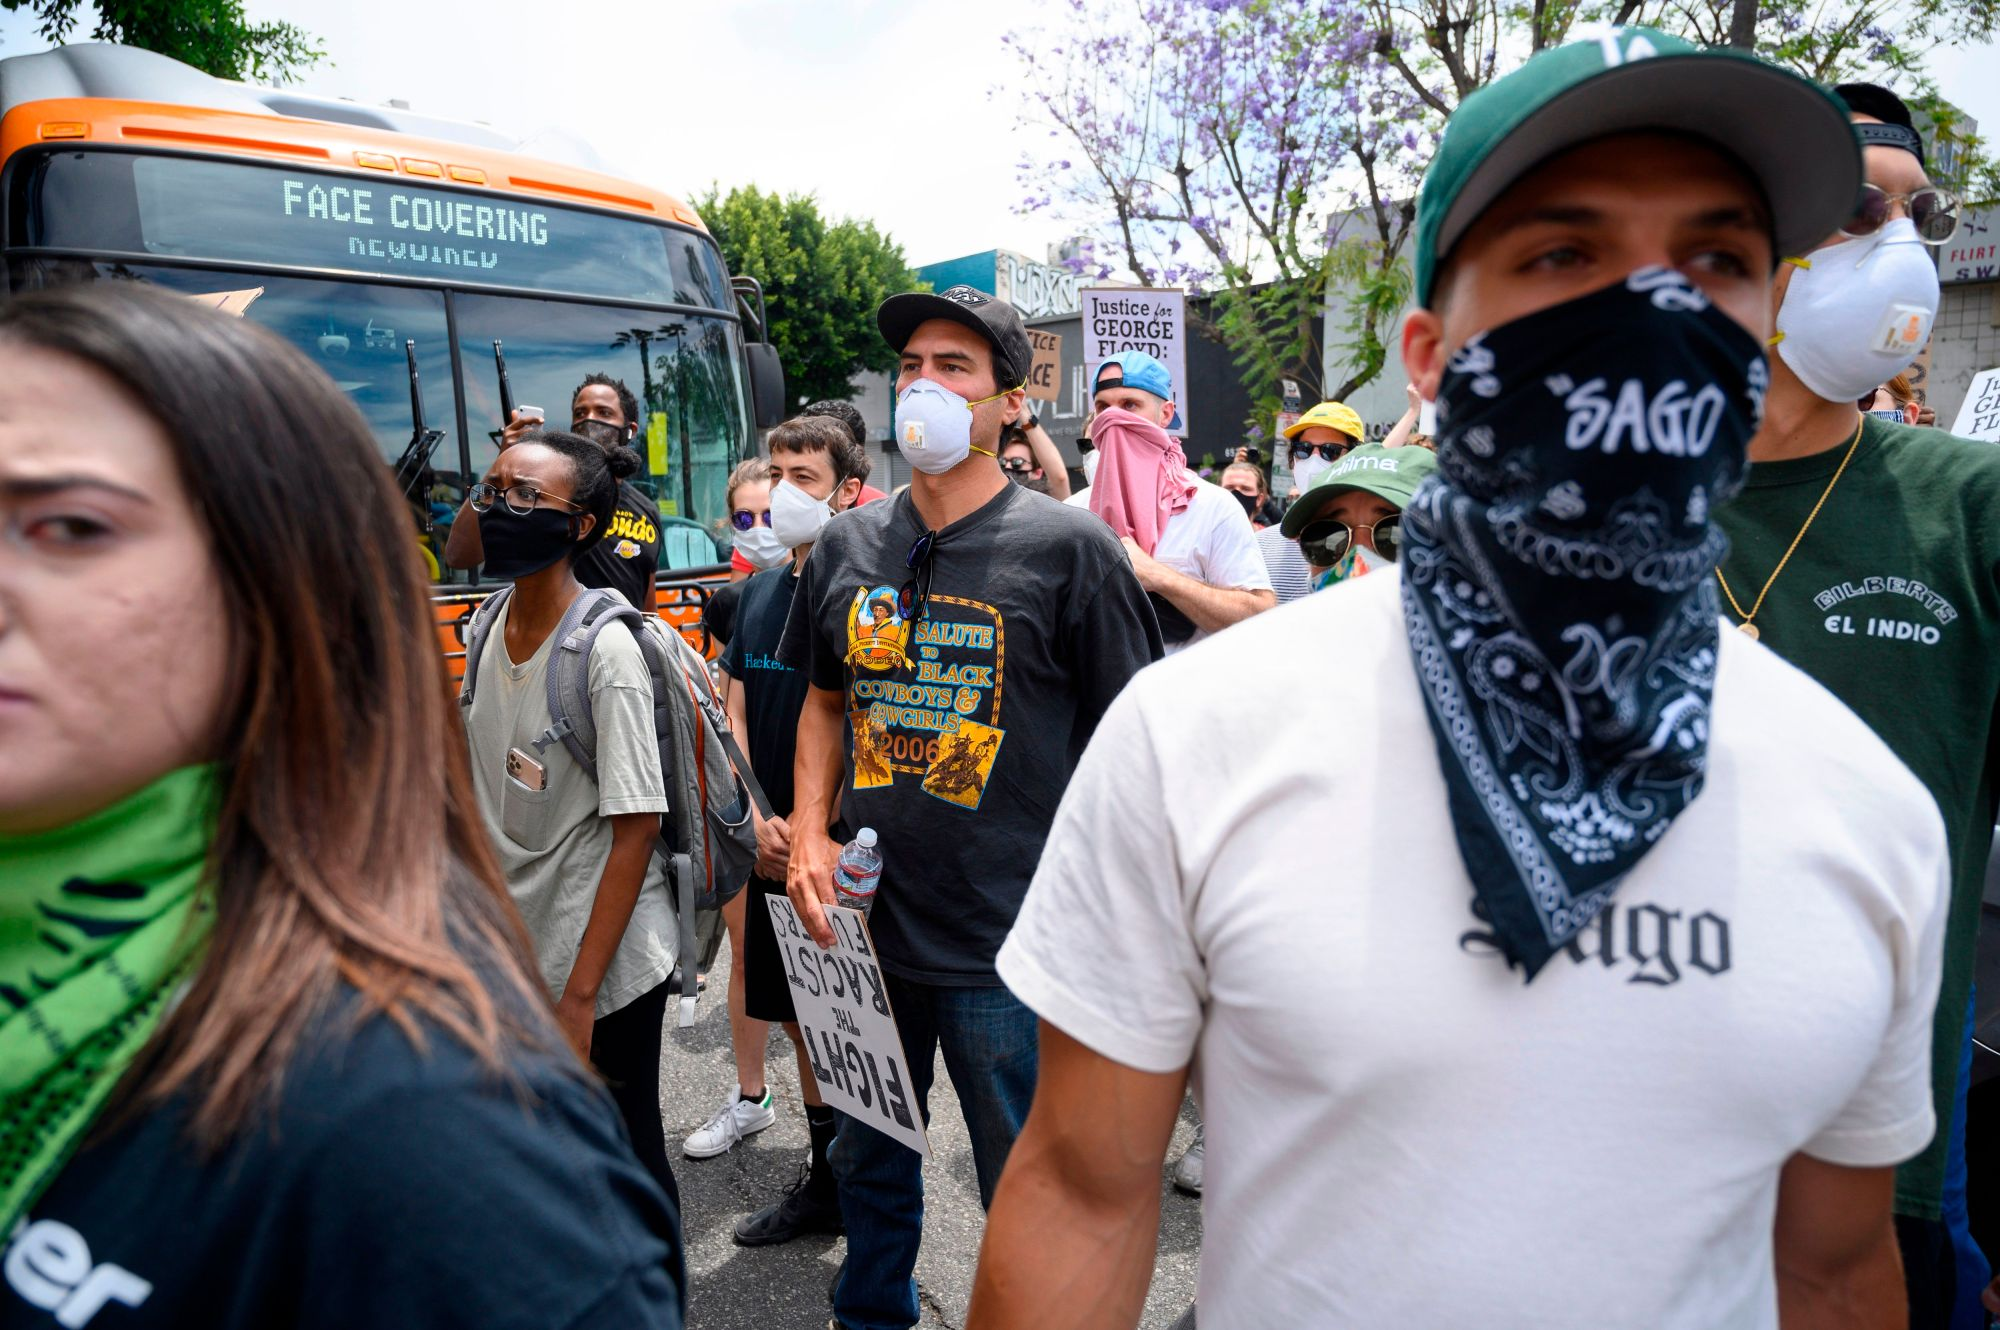 Demonstrators march through the streets of Hollywood, on June 2, 2020, to protest the death of George Floyd at the hands of police.(ROBYN BECK / AFP / Getty Images)